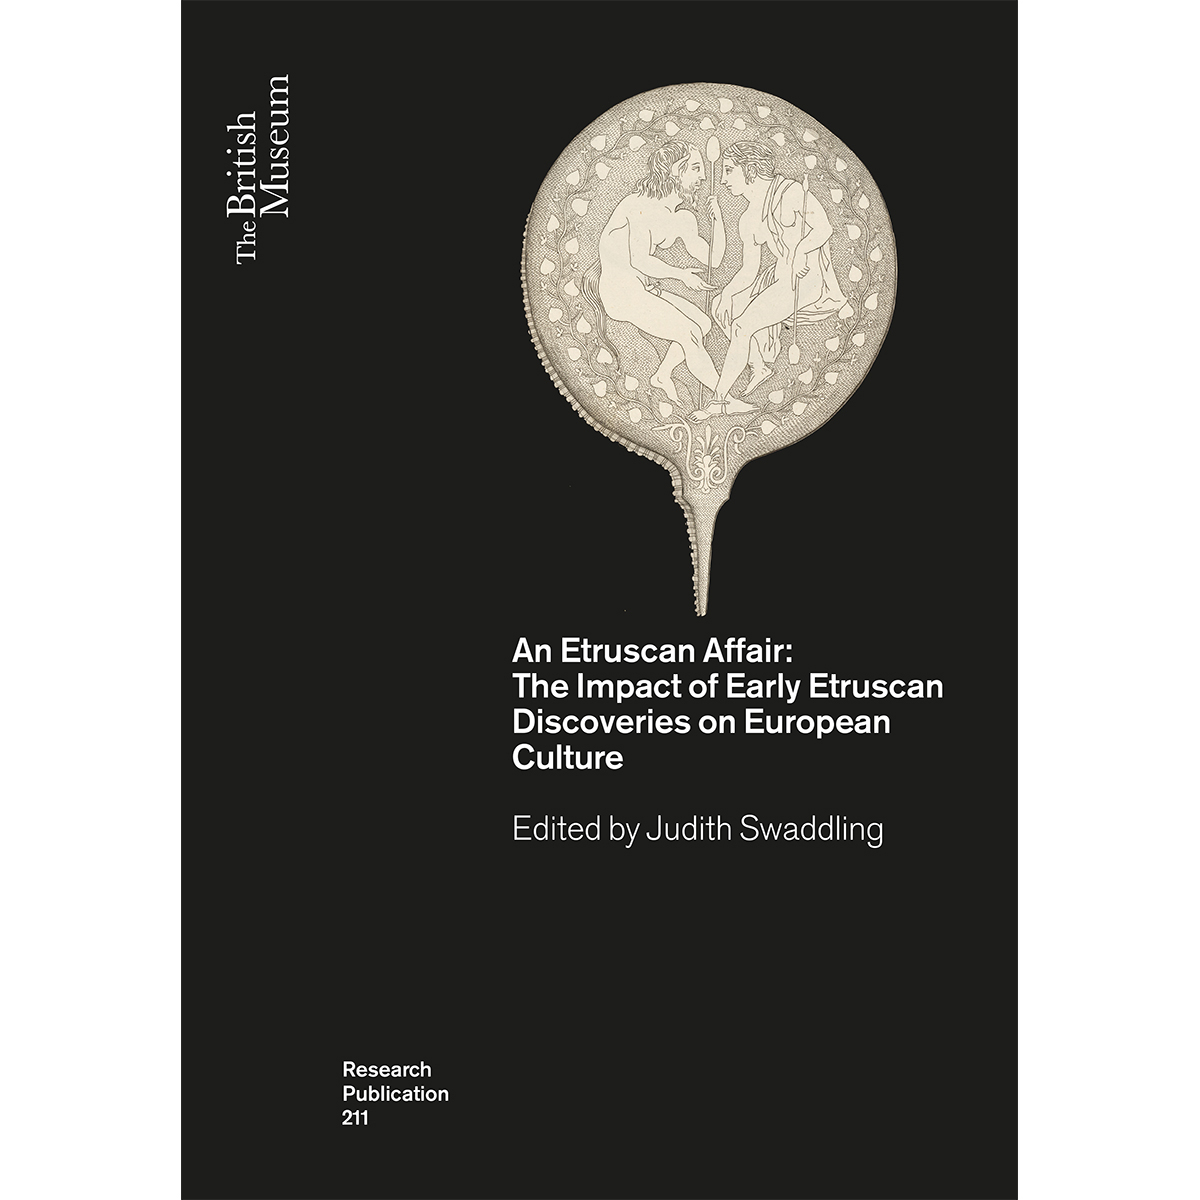 An Etruscan Affair: The Impact of Early Etruscan Discoveries on European Culture